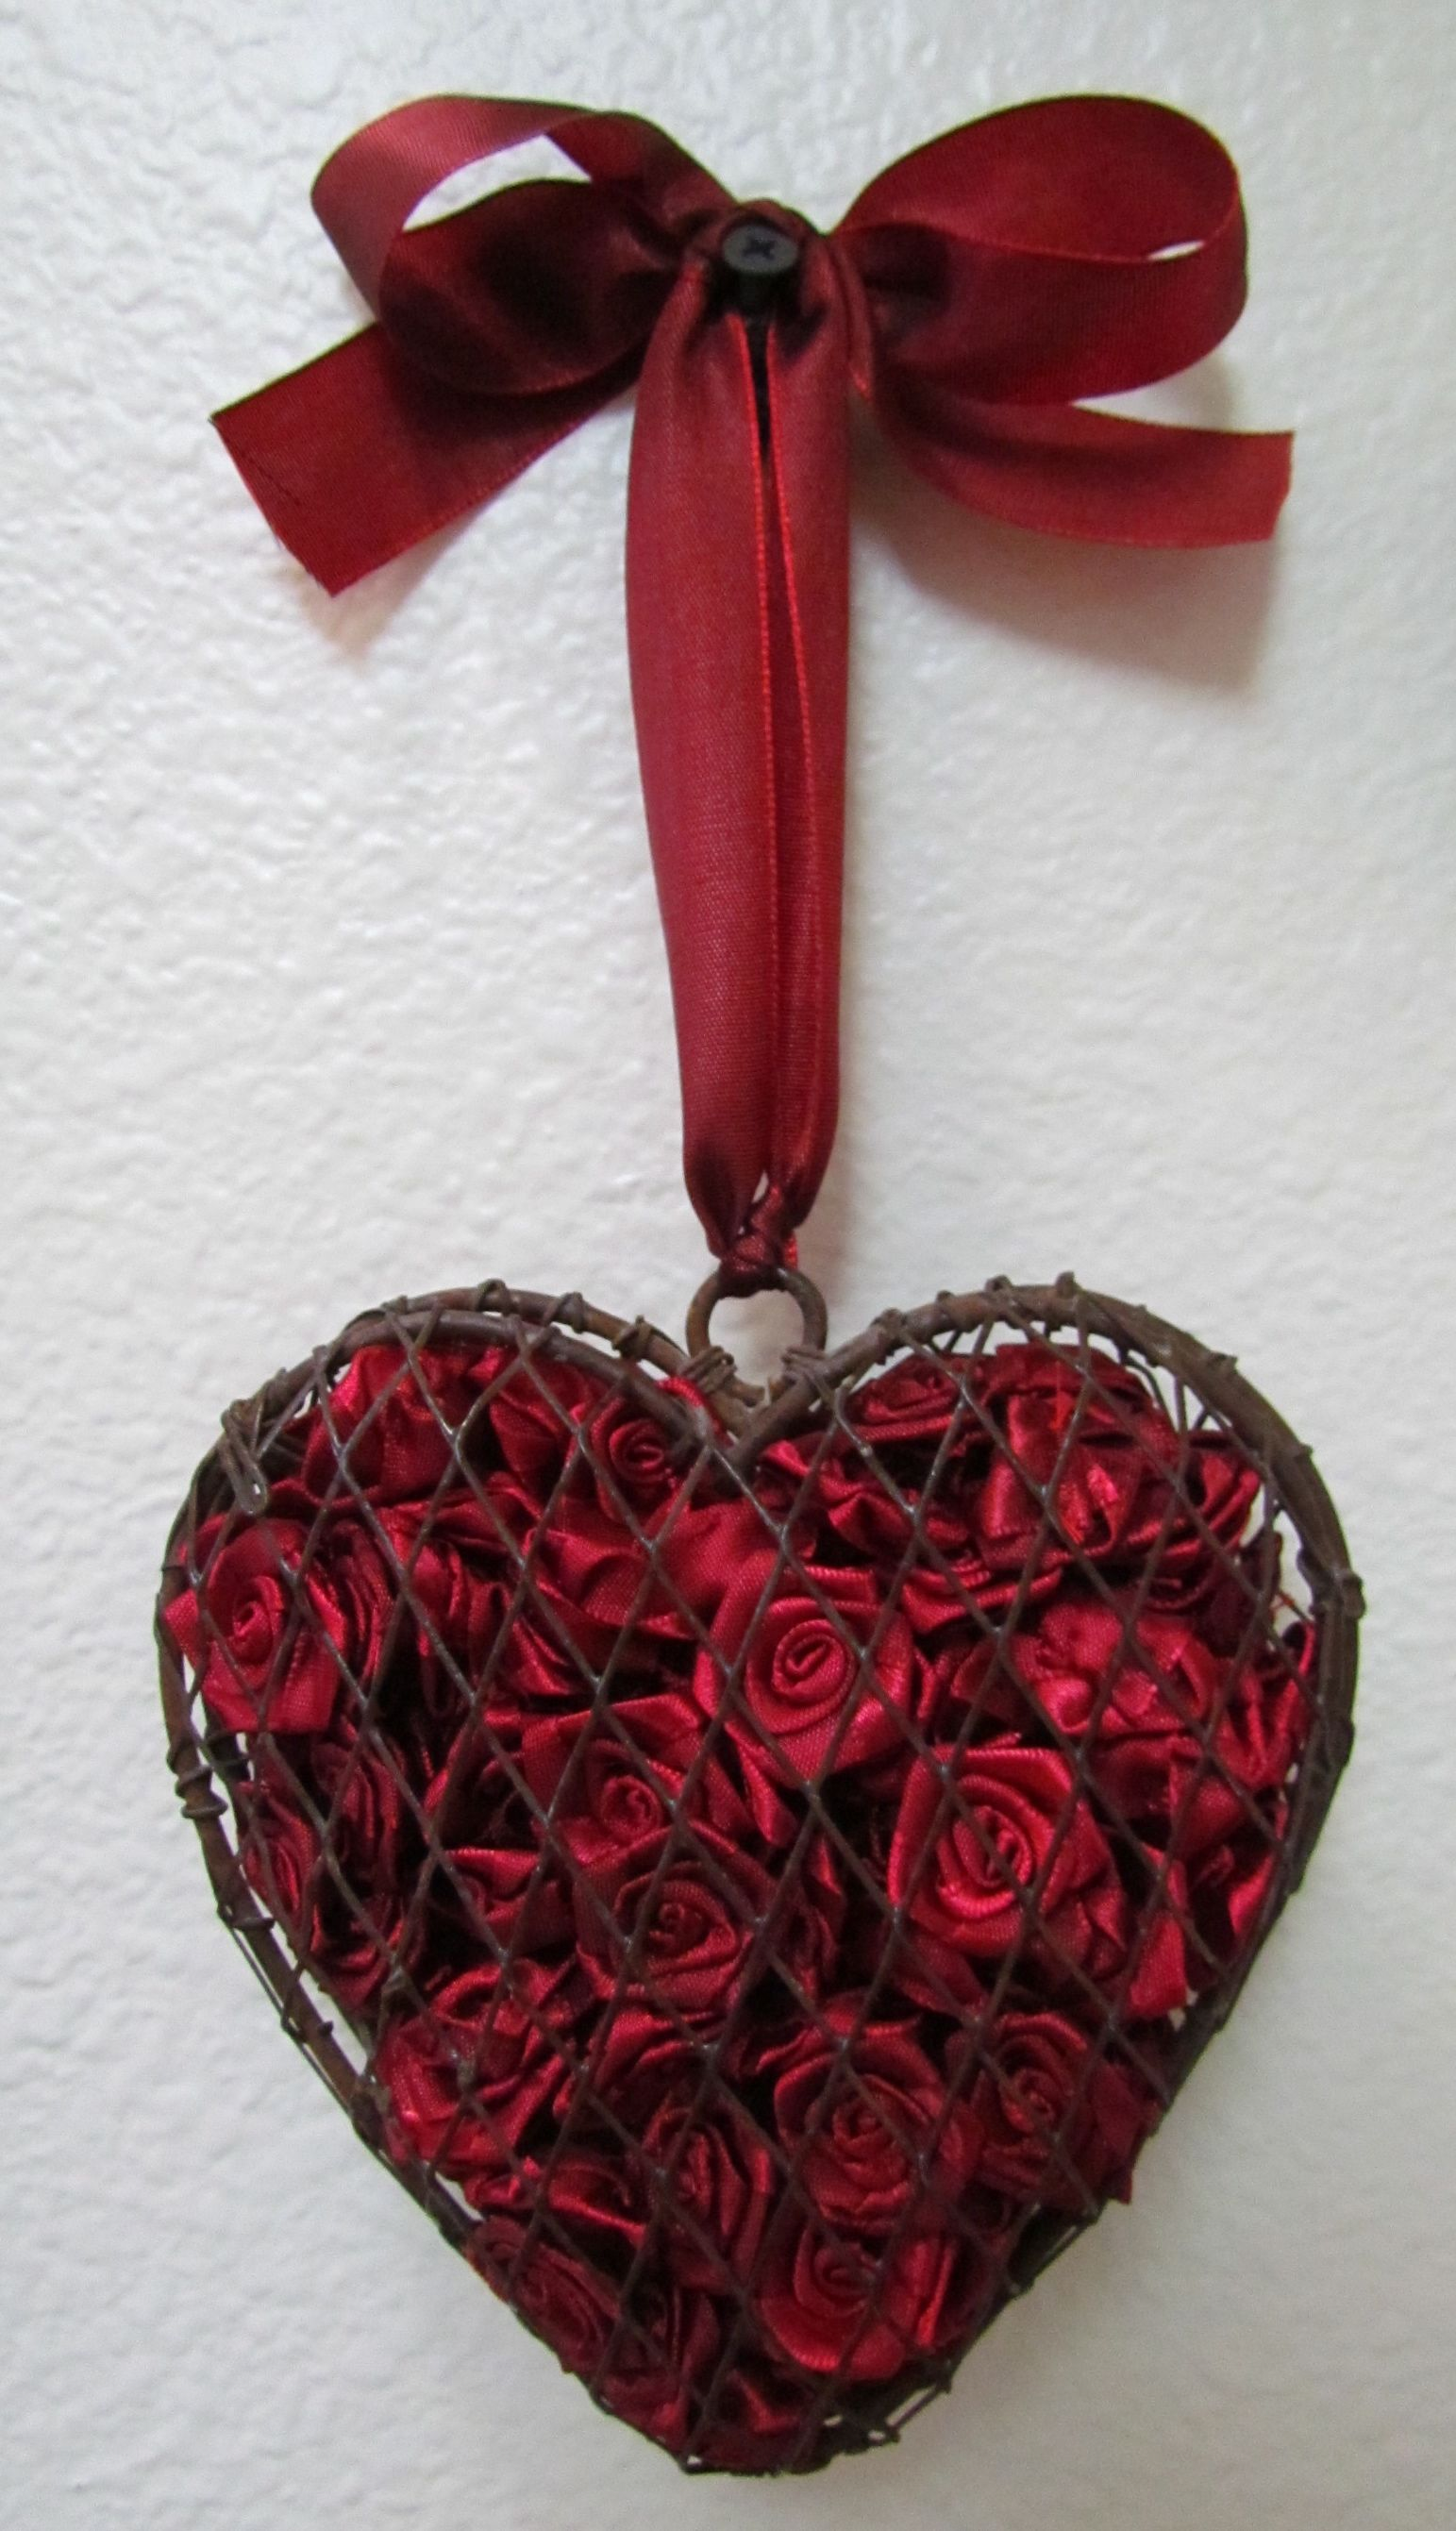 Potpourri Basket Filled With Red Fabric Roses Coeur En Photo Deco Coeur Decoration Coeur